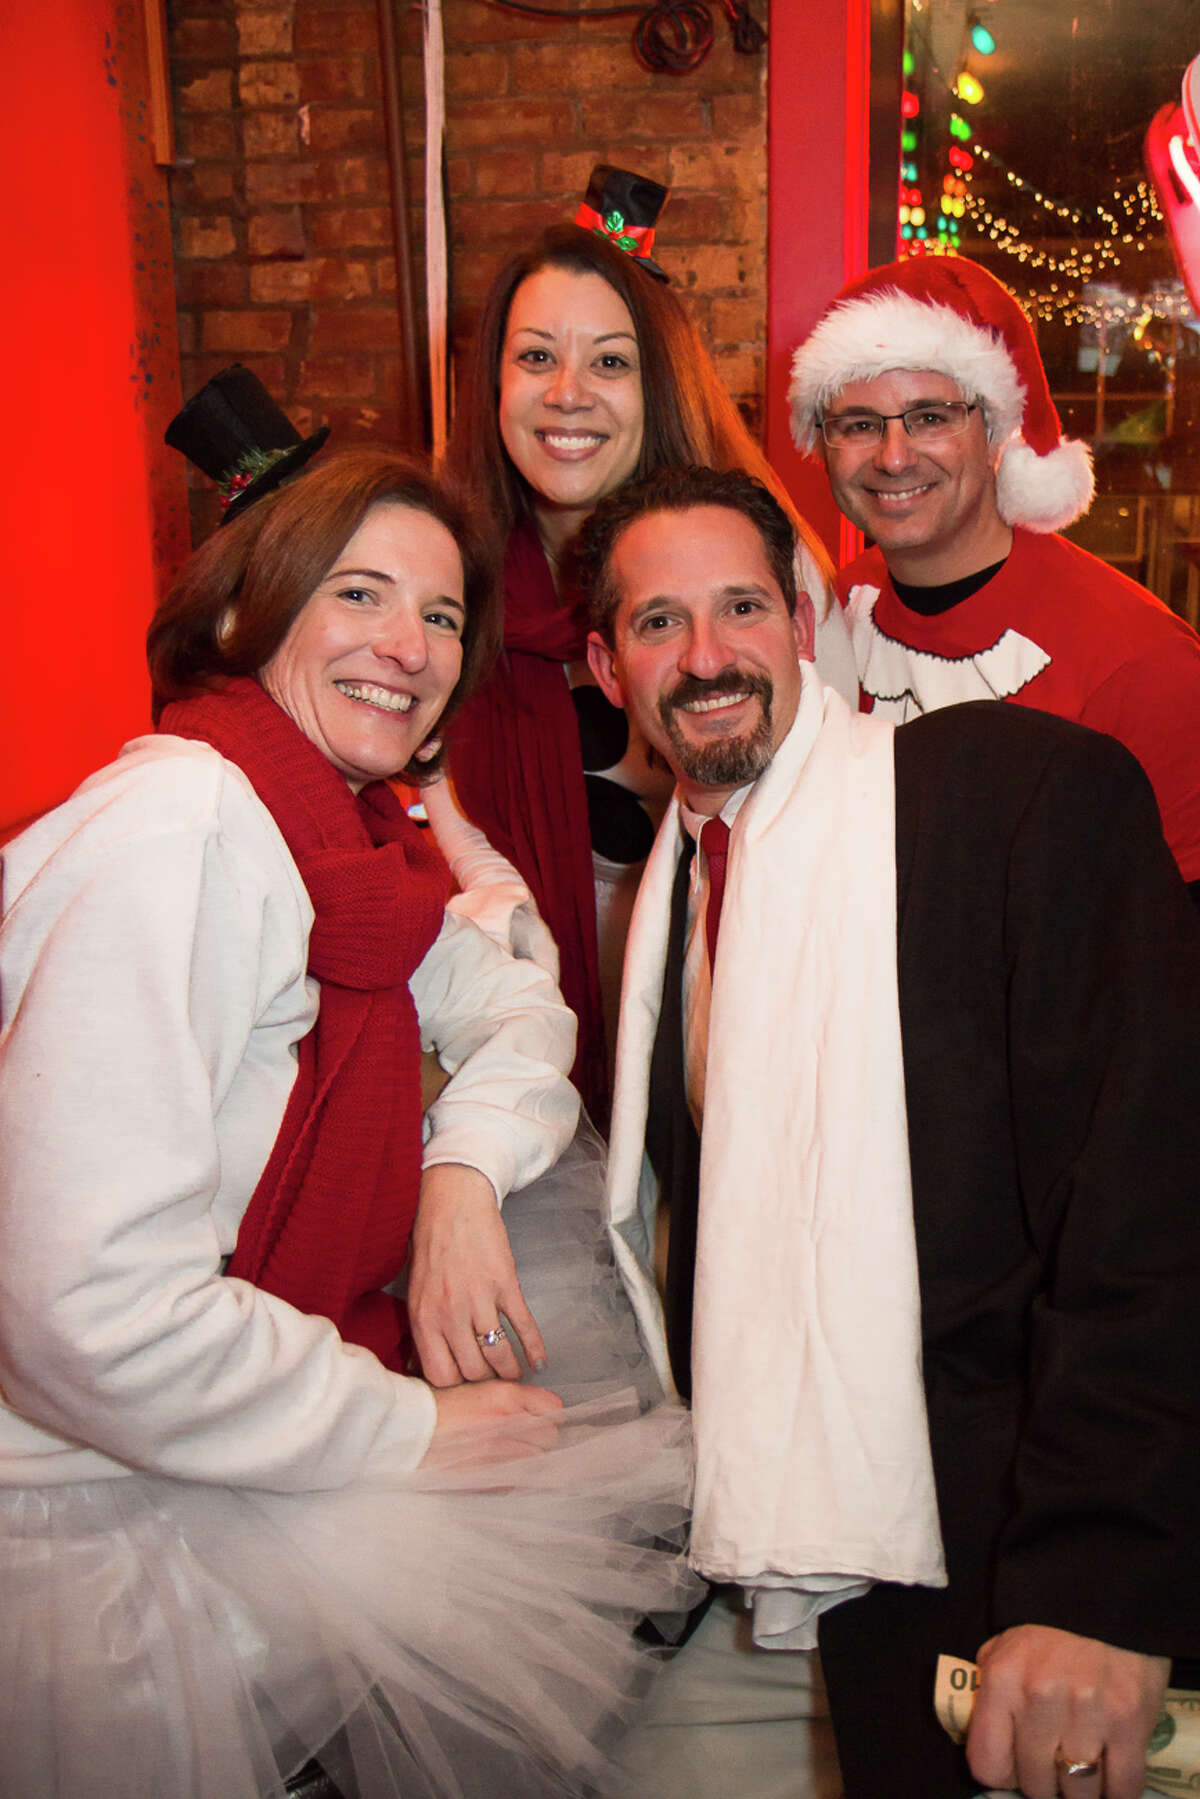 Were You Seen at the 11th Annual Santa Speedo Sprint on Lark Street in Albany on Saturday, December 10, 2016? Proceeds of the event benefit the Albany Damien Center and the HIV/AIDS program at Albany Medical Center.